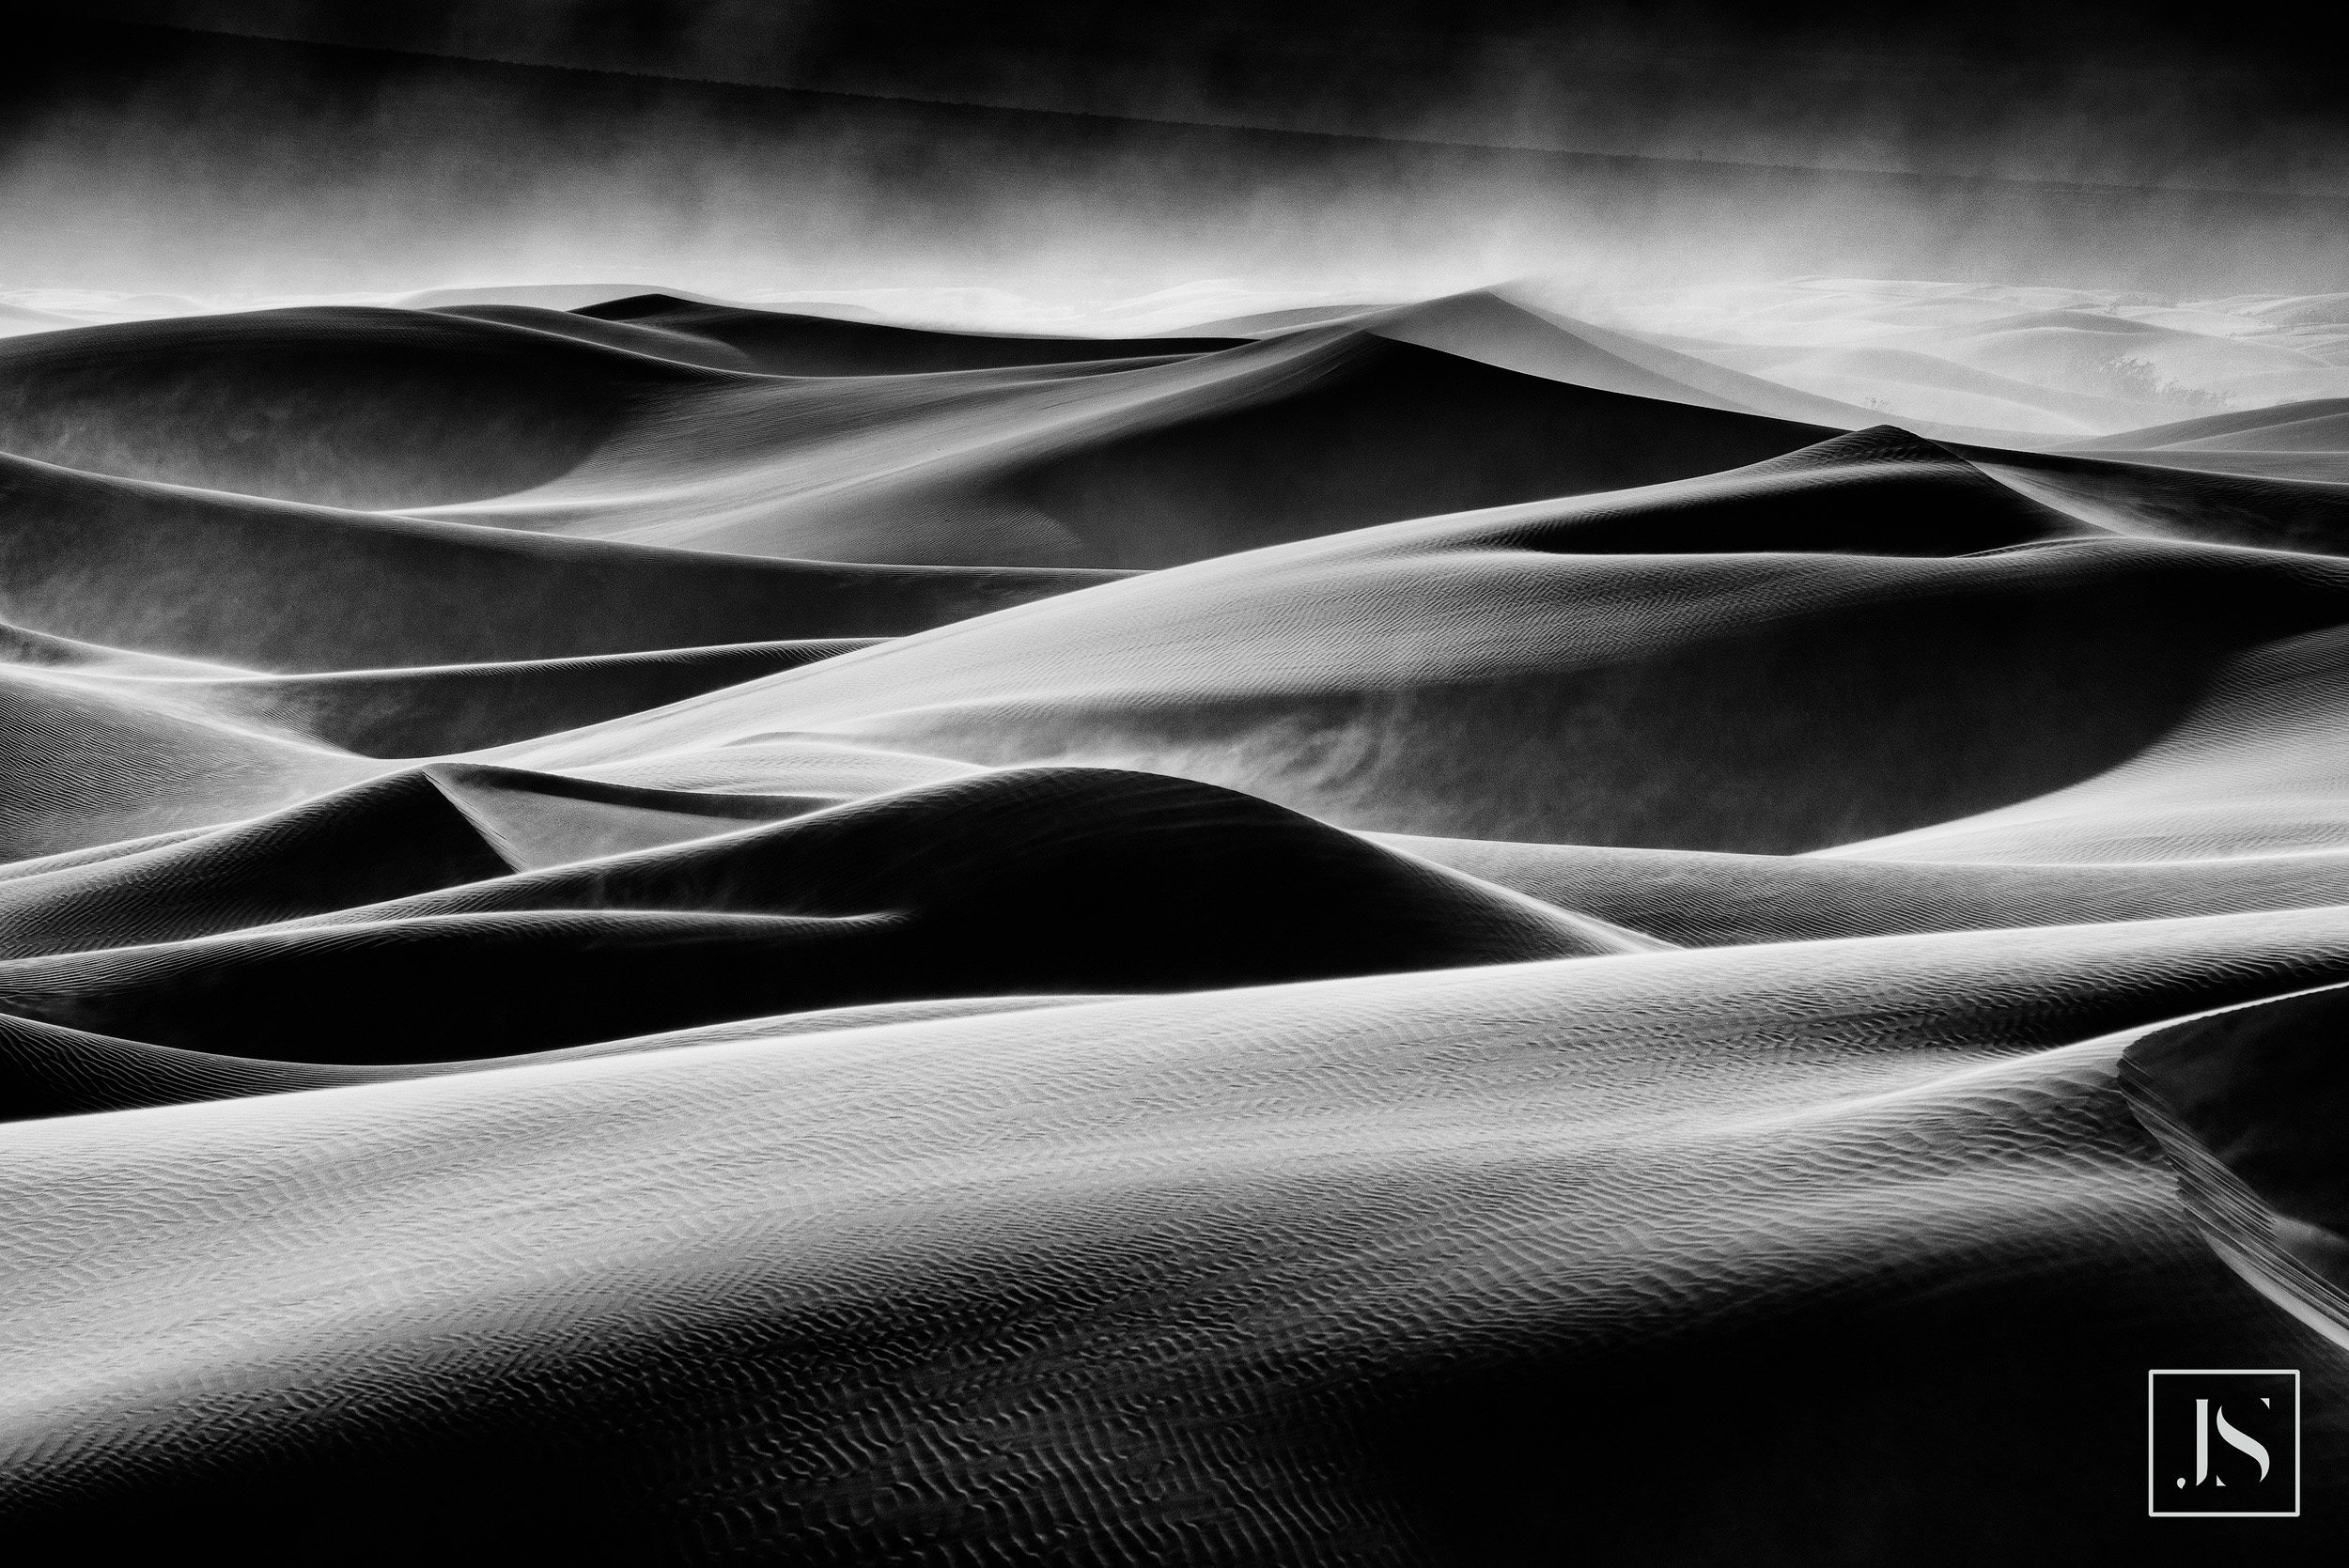 Wind Storm, Mesquite Dunes-Death Valley, CA 2015